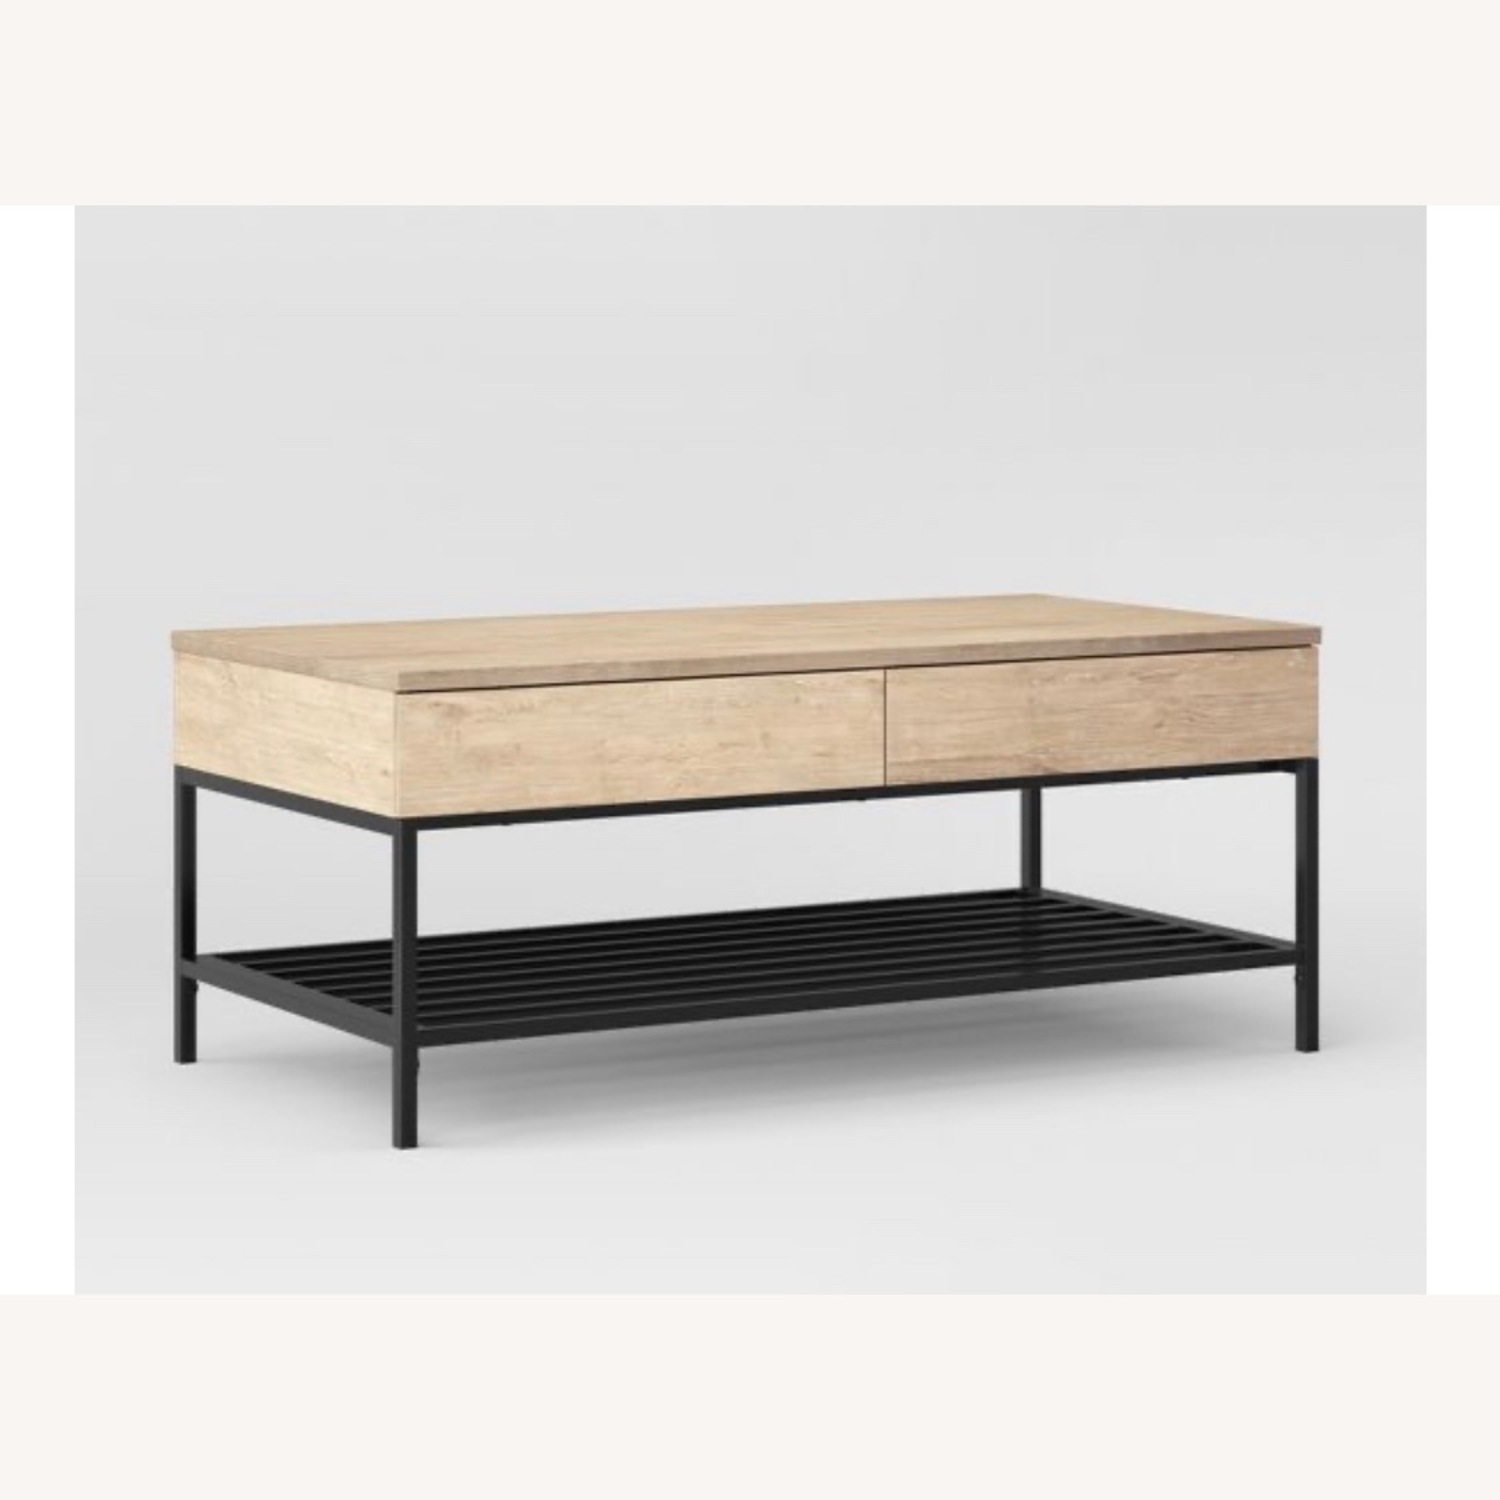 Target Coffee Table with Storage - image-1